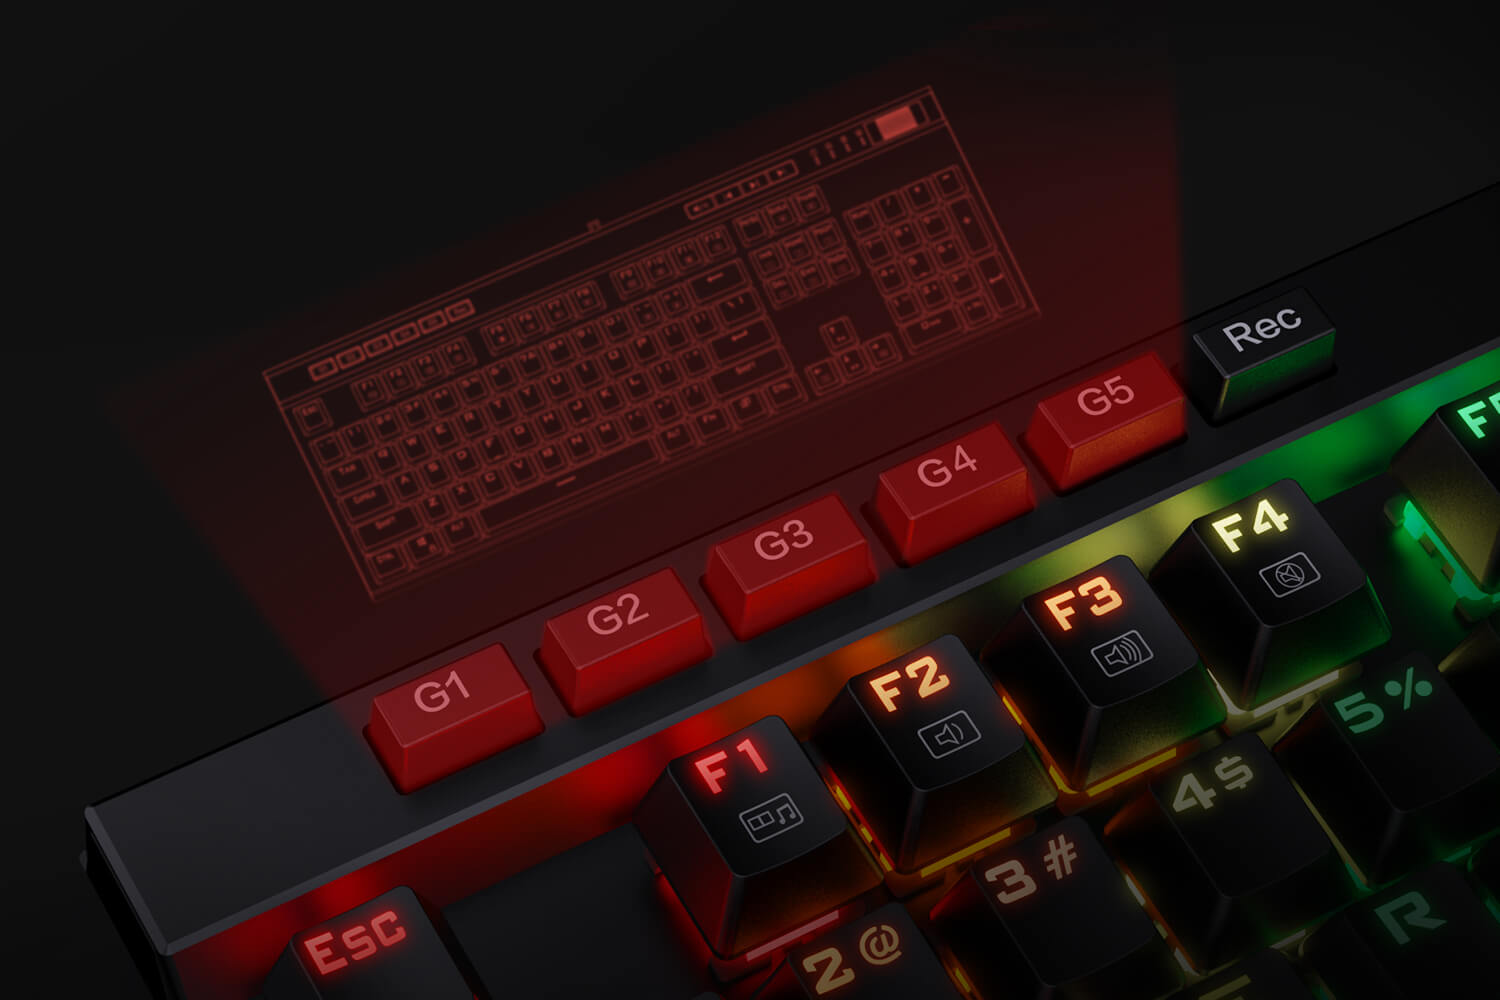 redragon k580 rgb keyboard with Onboard Macro Keys